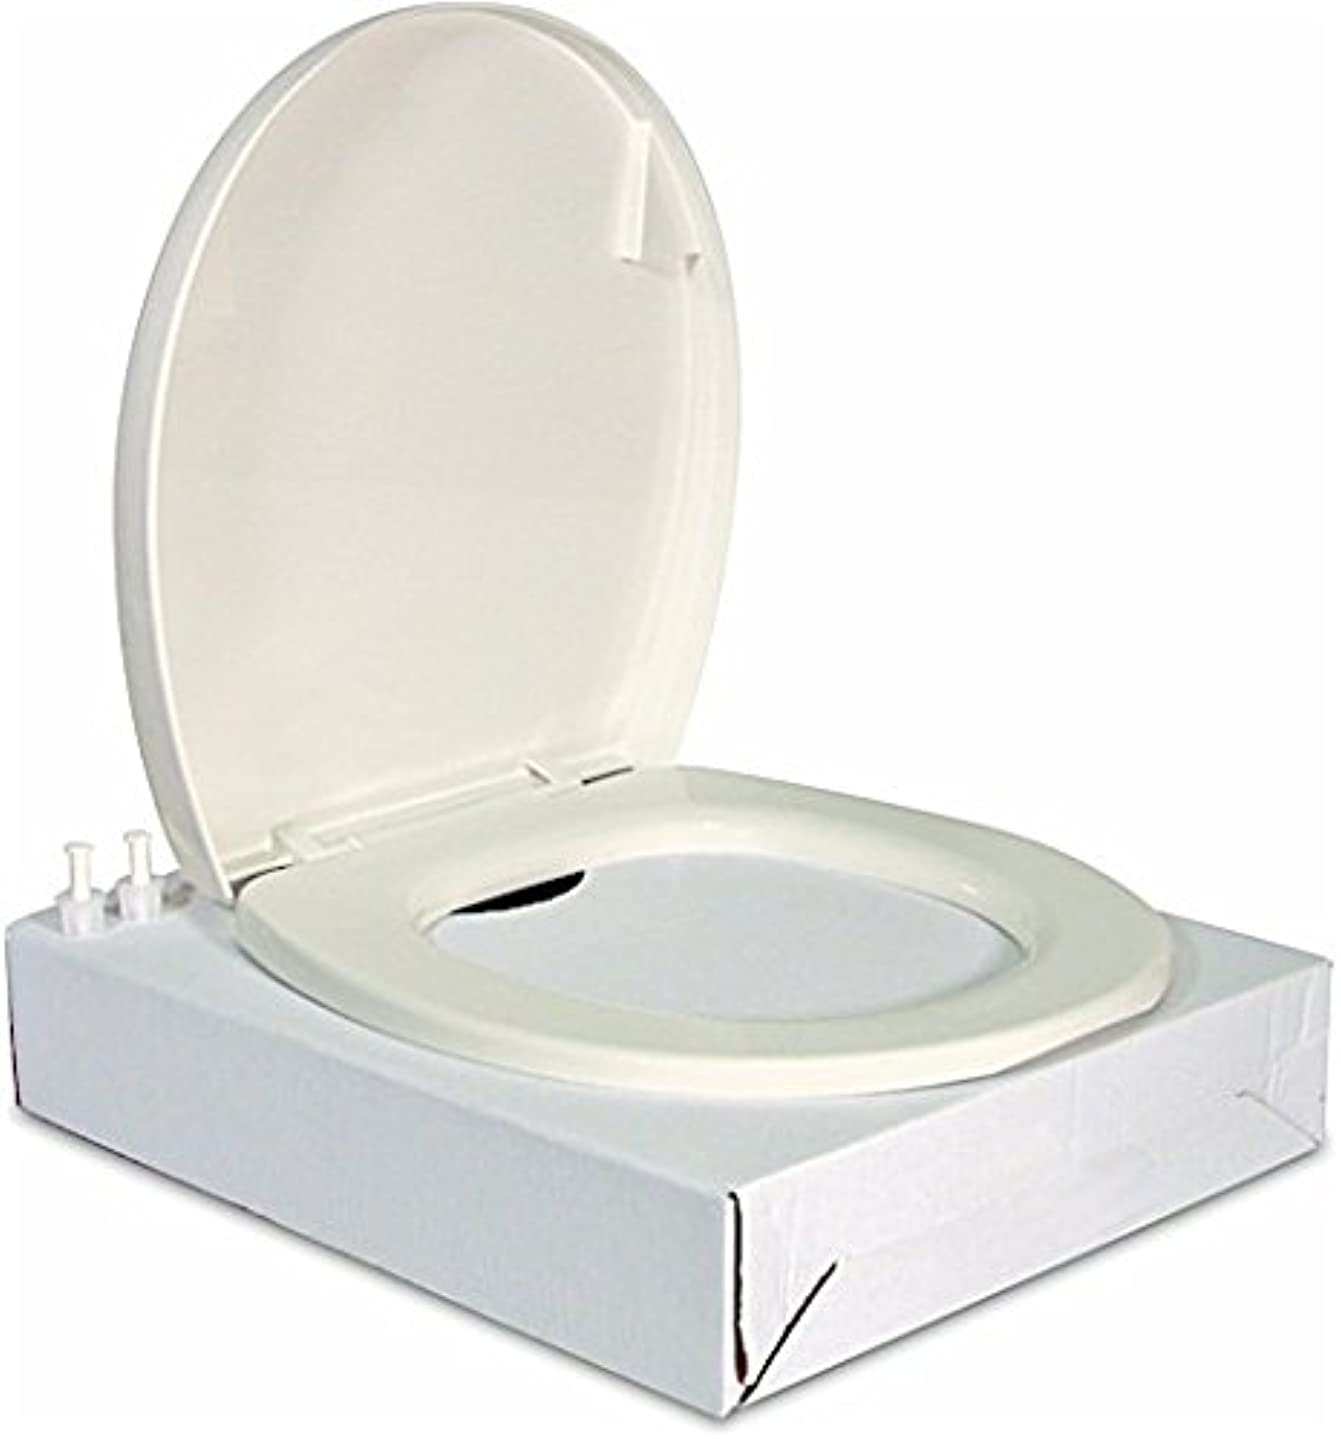 Thetford 42178 Seat and Cover Kit for Aqua-Magic Residence RV Toilets-White